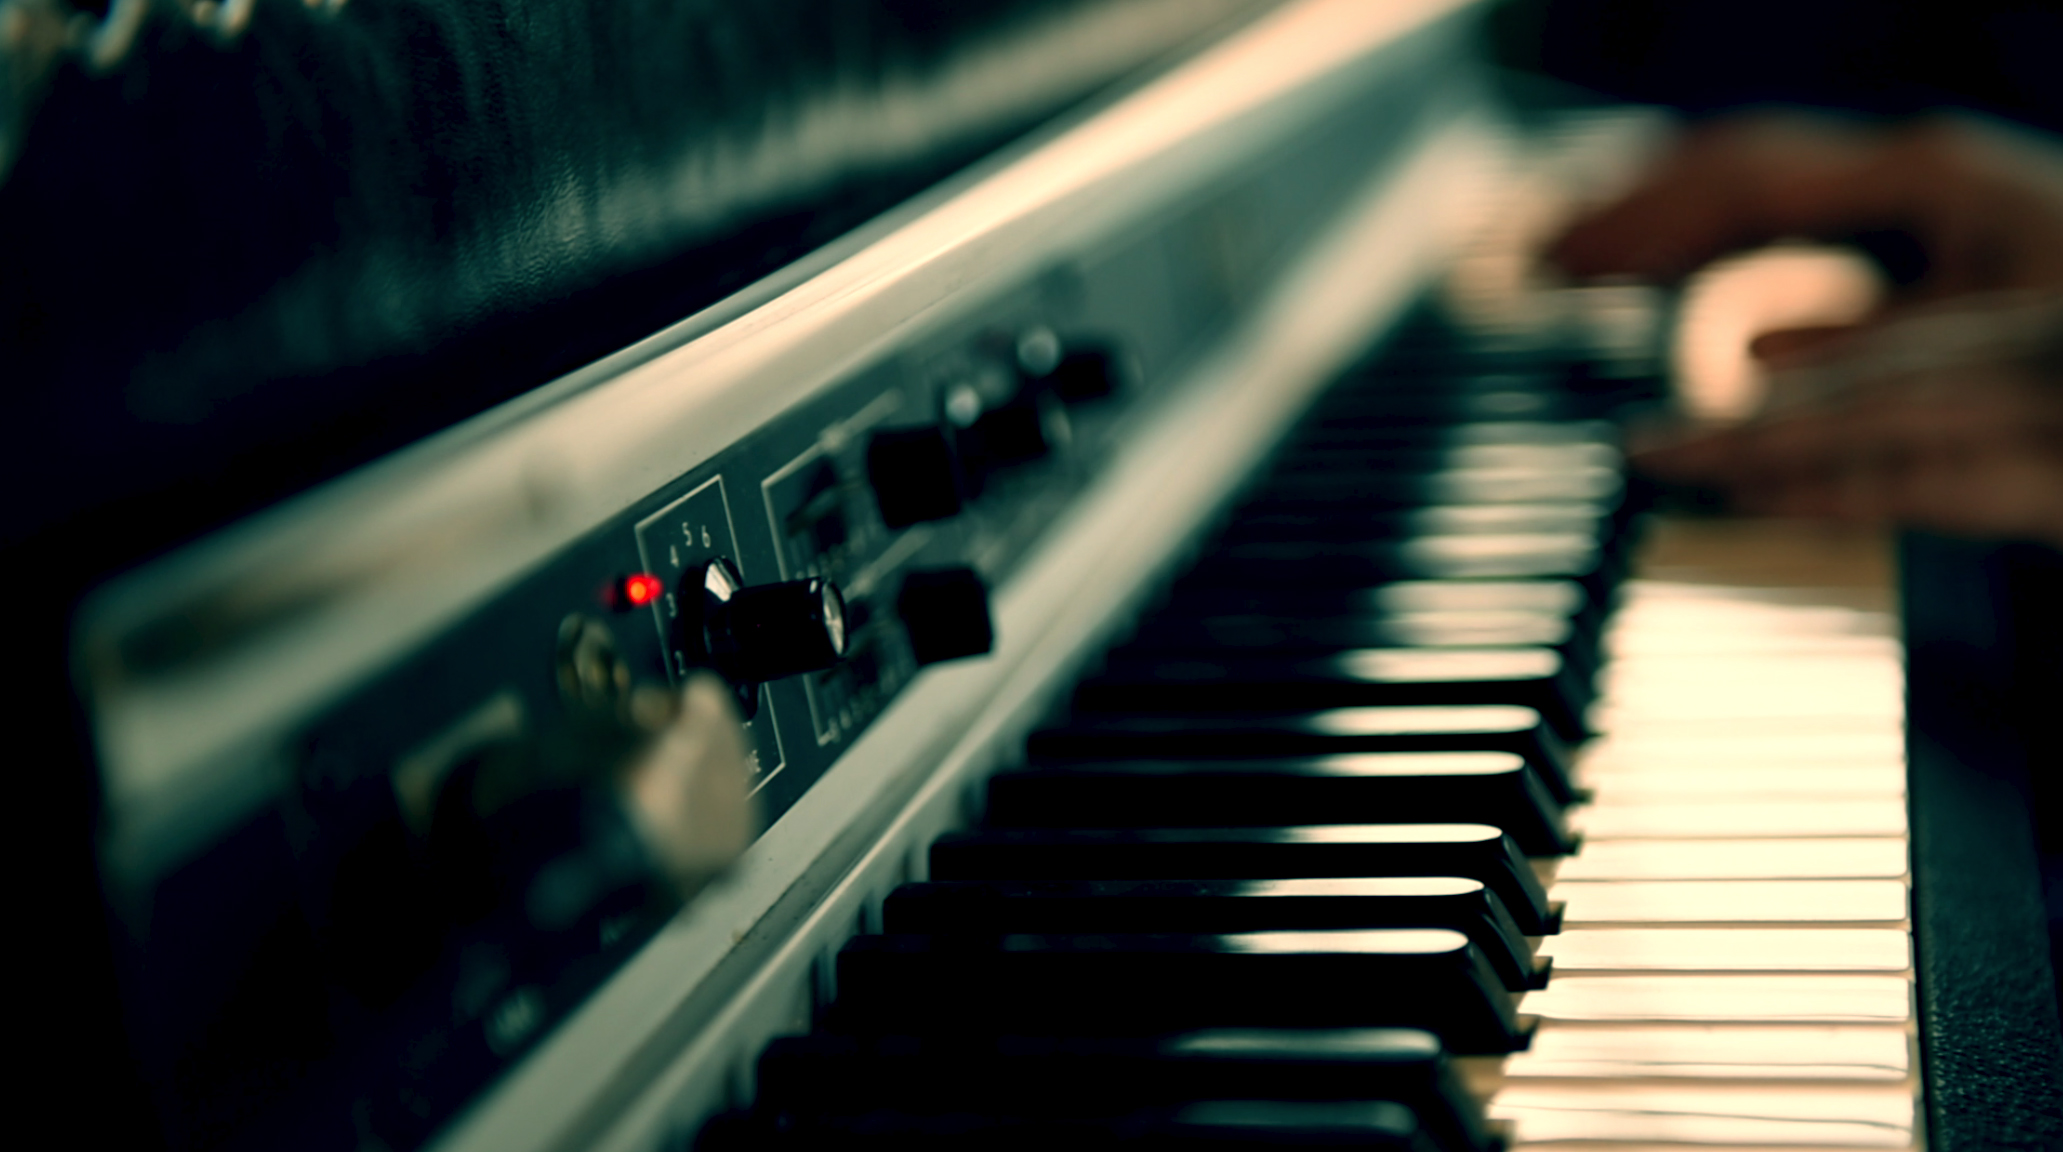 Image: Fender Rhodes Suitcase - at the heart of many of the albums neo soul sounds and voice.